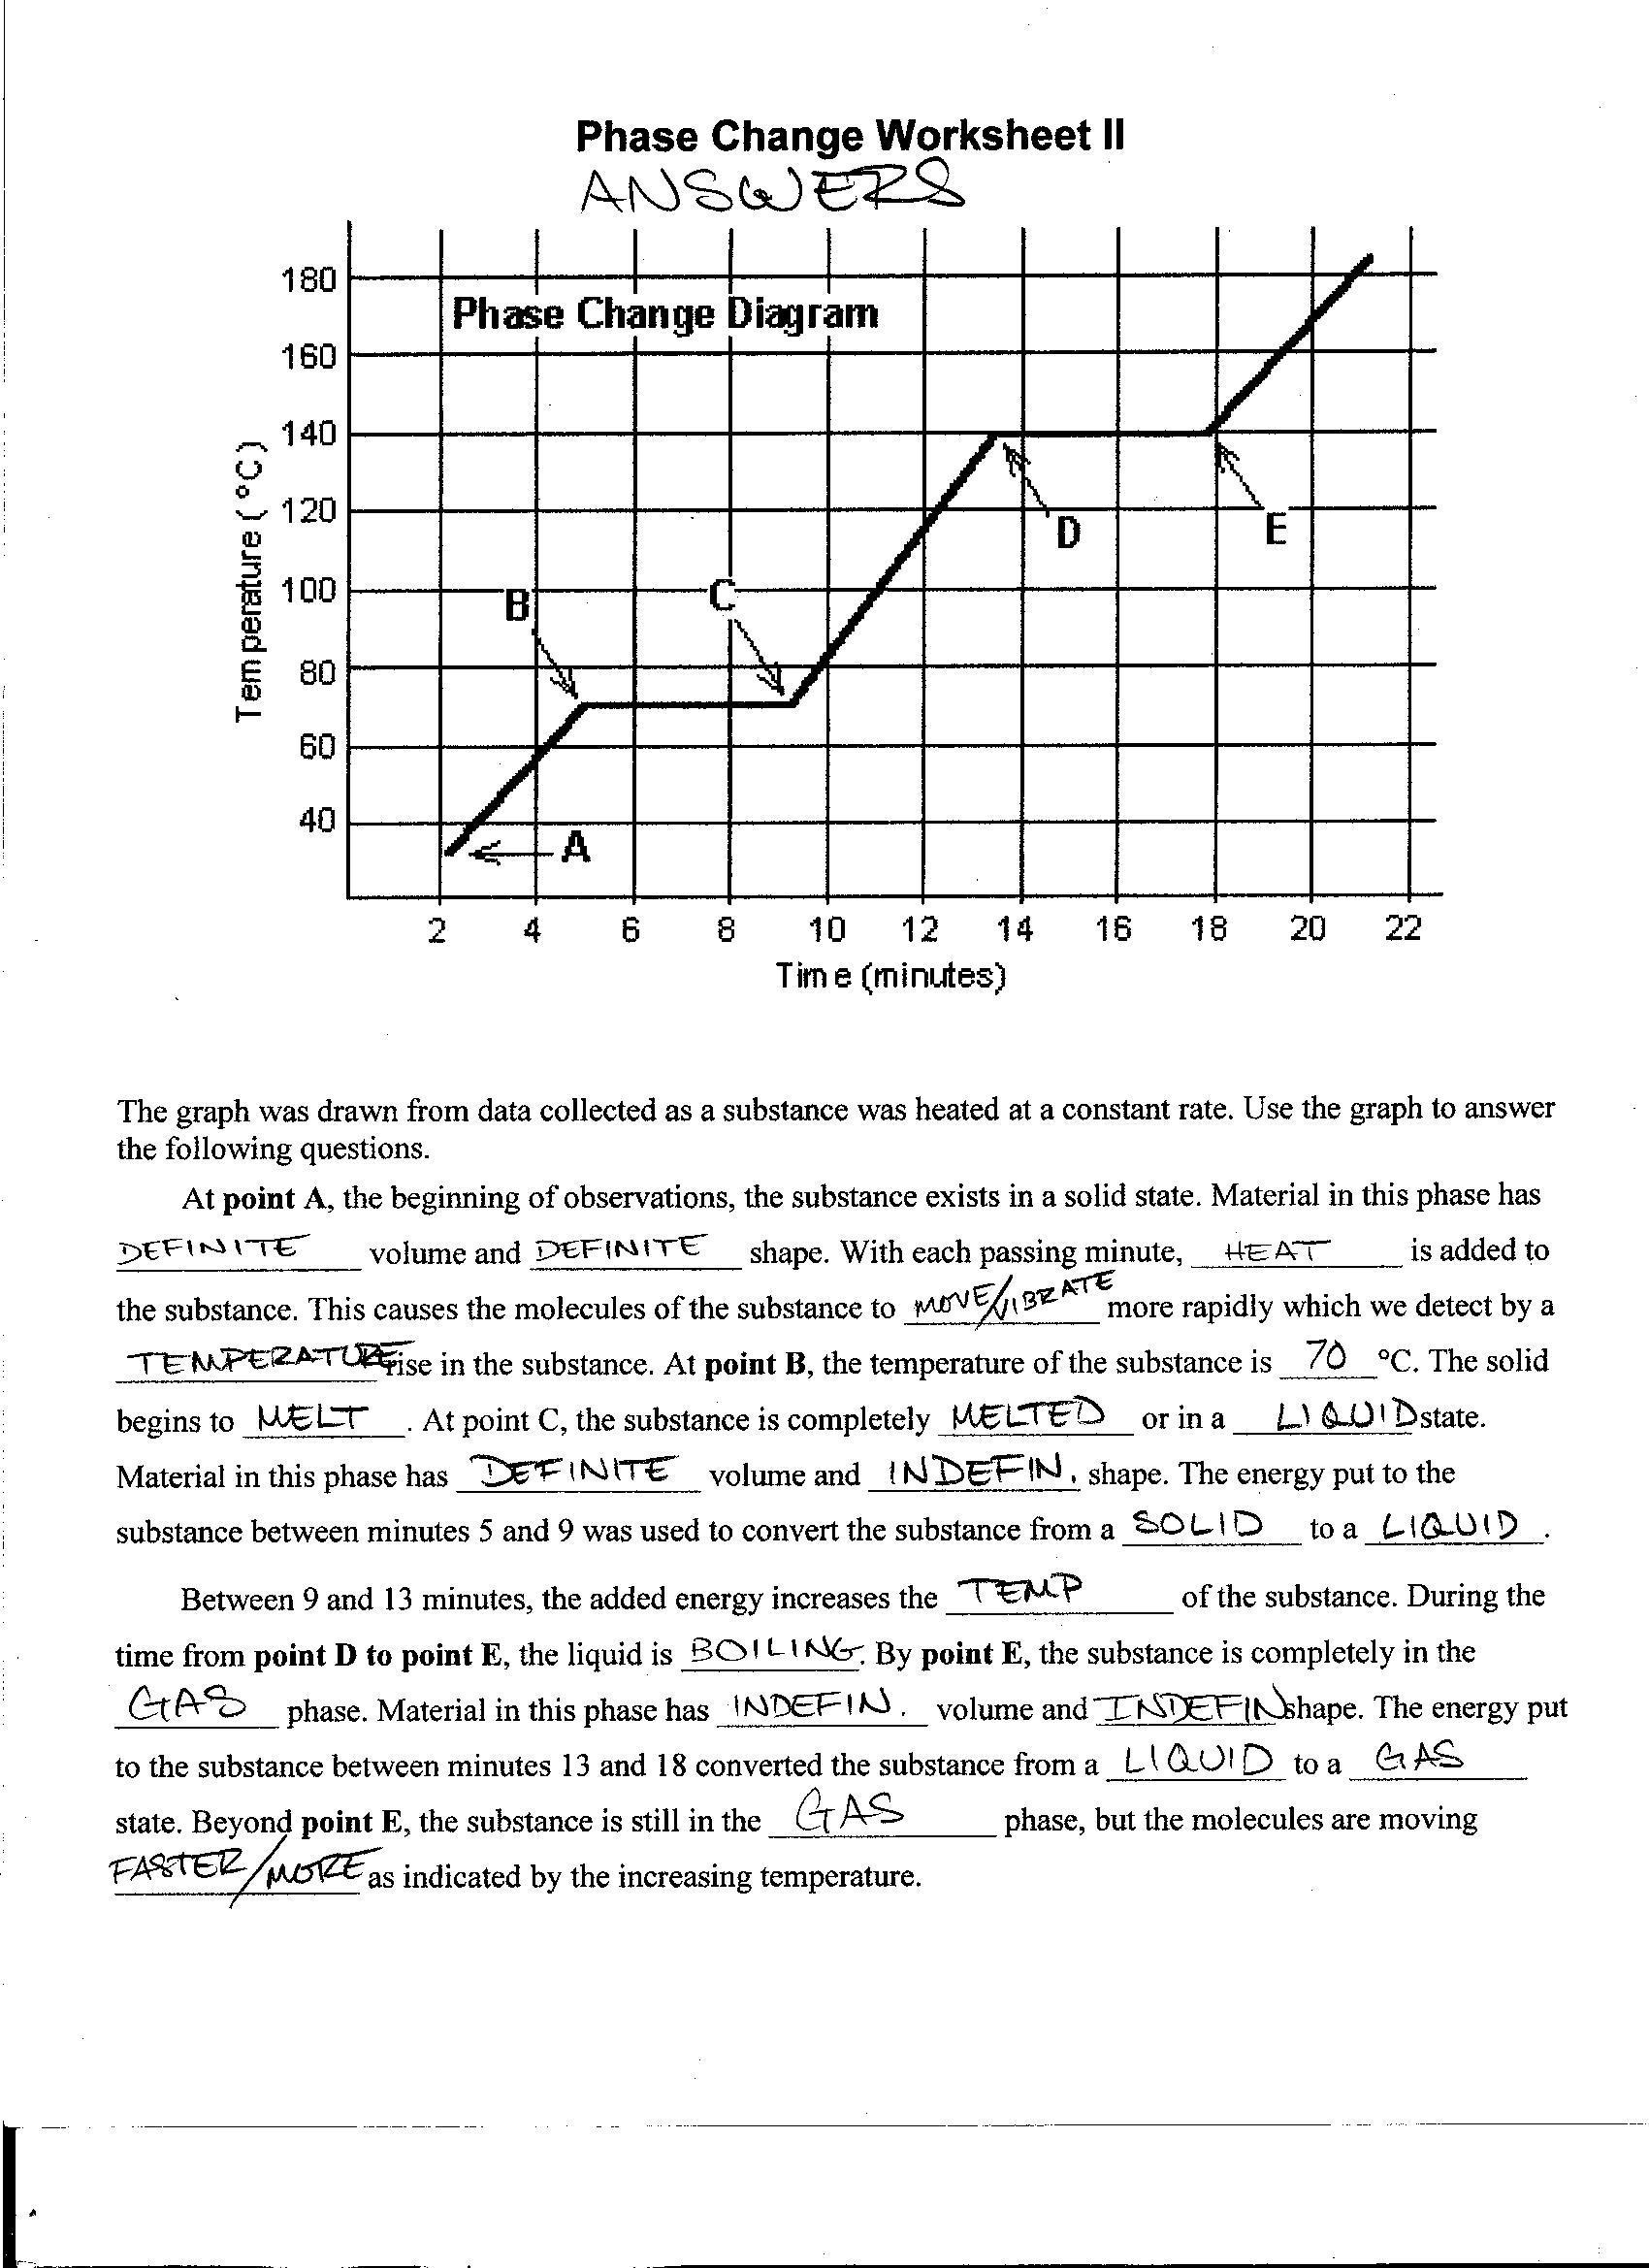 Phase Change Worksheet Answers : phase, change, worksheet, answers, DIAGRAM], Chemistry, Phase, Diagrams, Answers, Version, Quality, CDIAGRAM.RONDINS-PYRENEES.FR